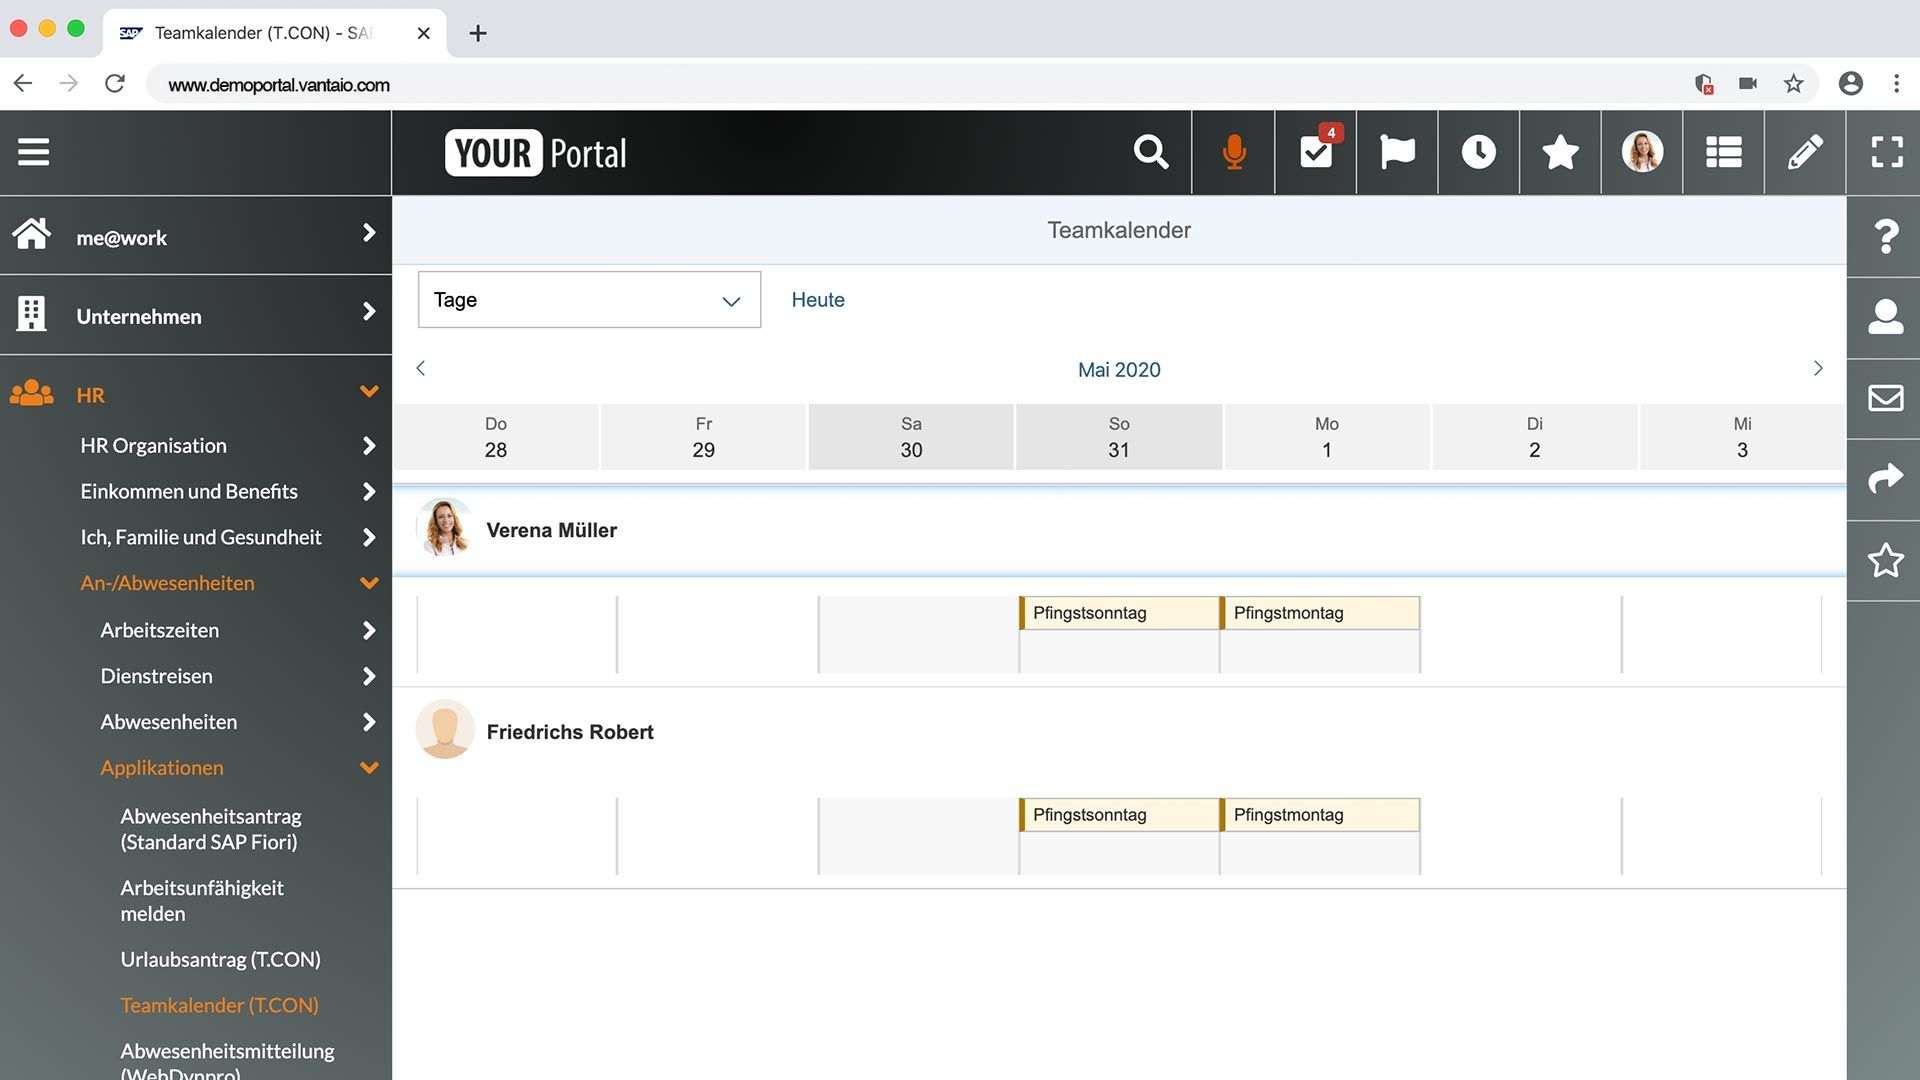 VANTAiO HR Portal auf SAP-Basis